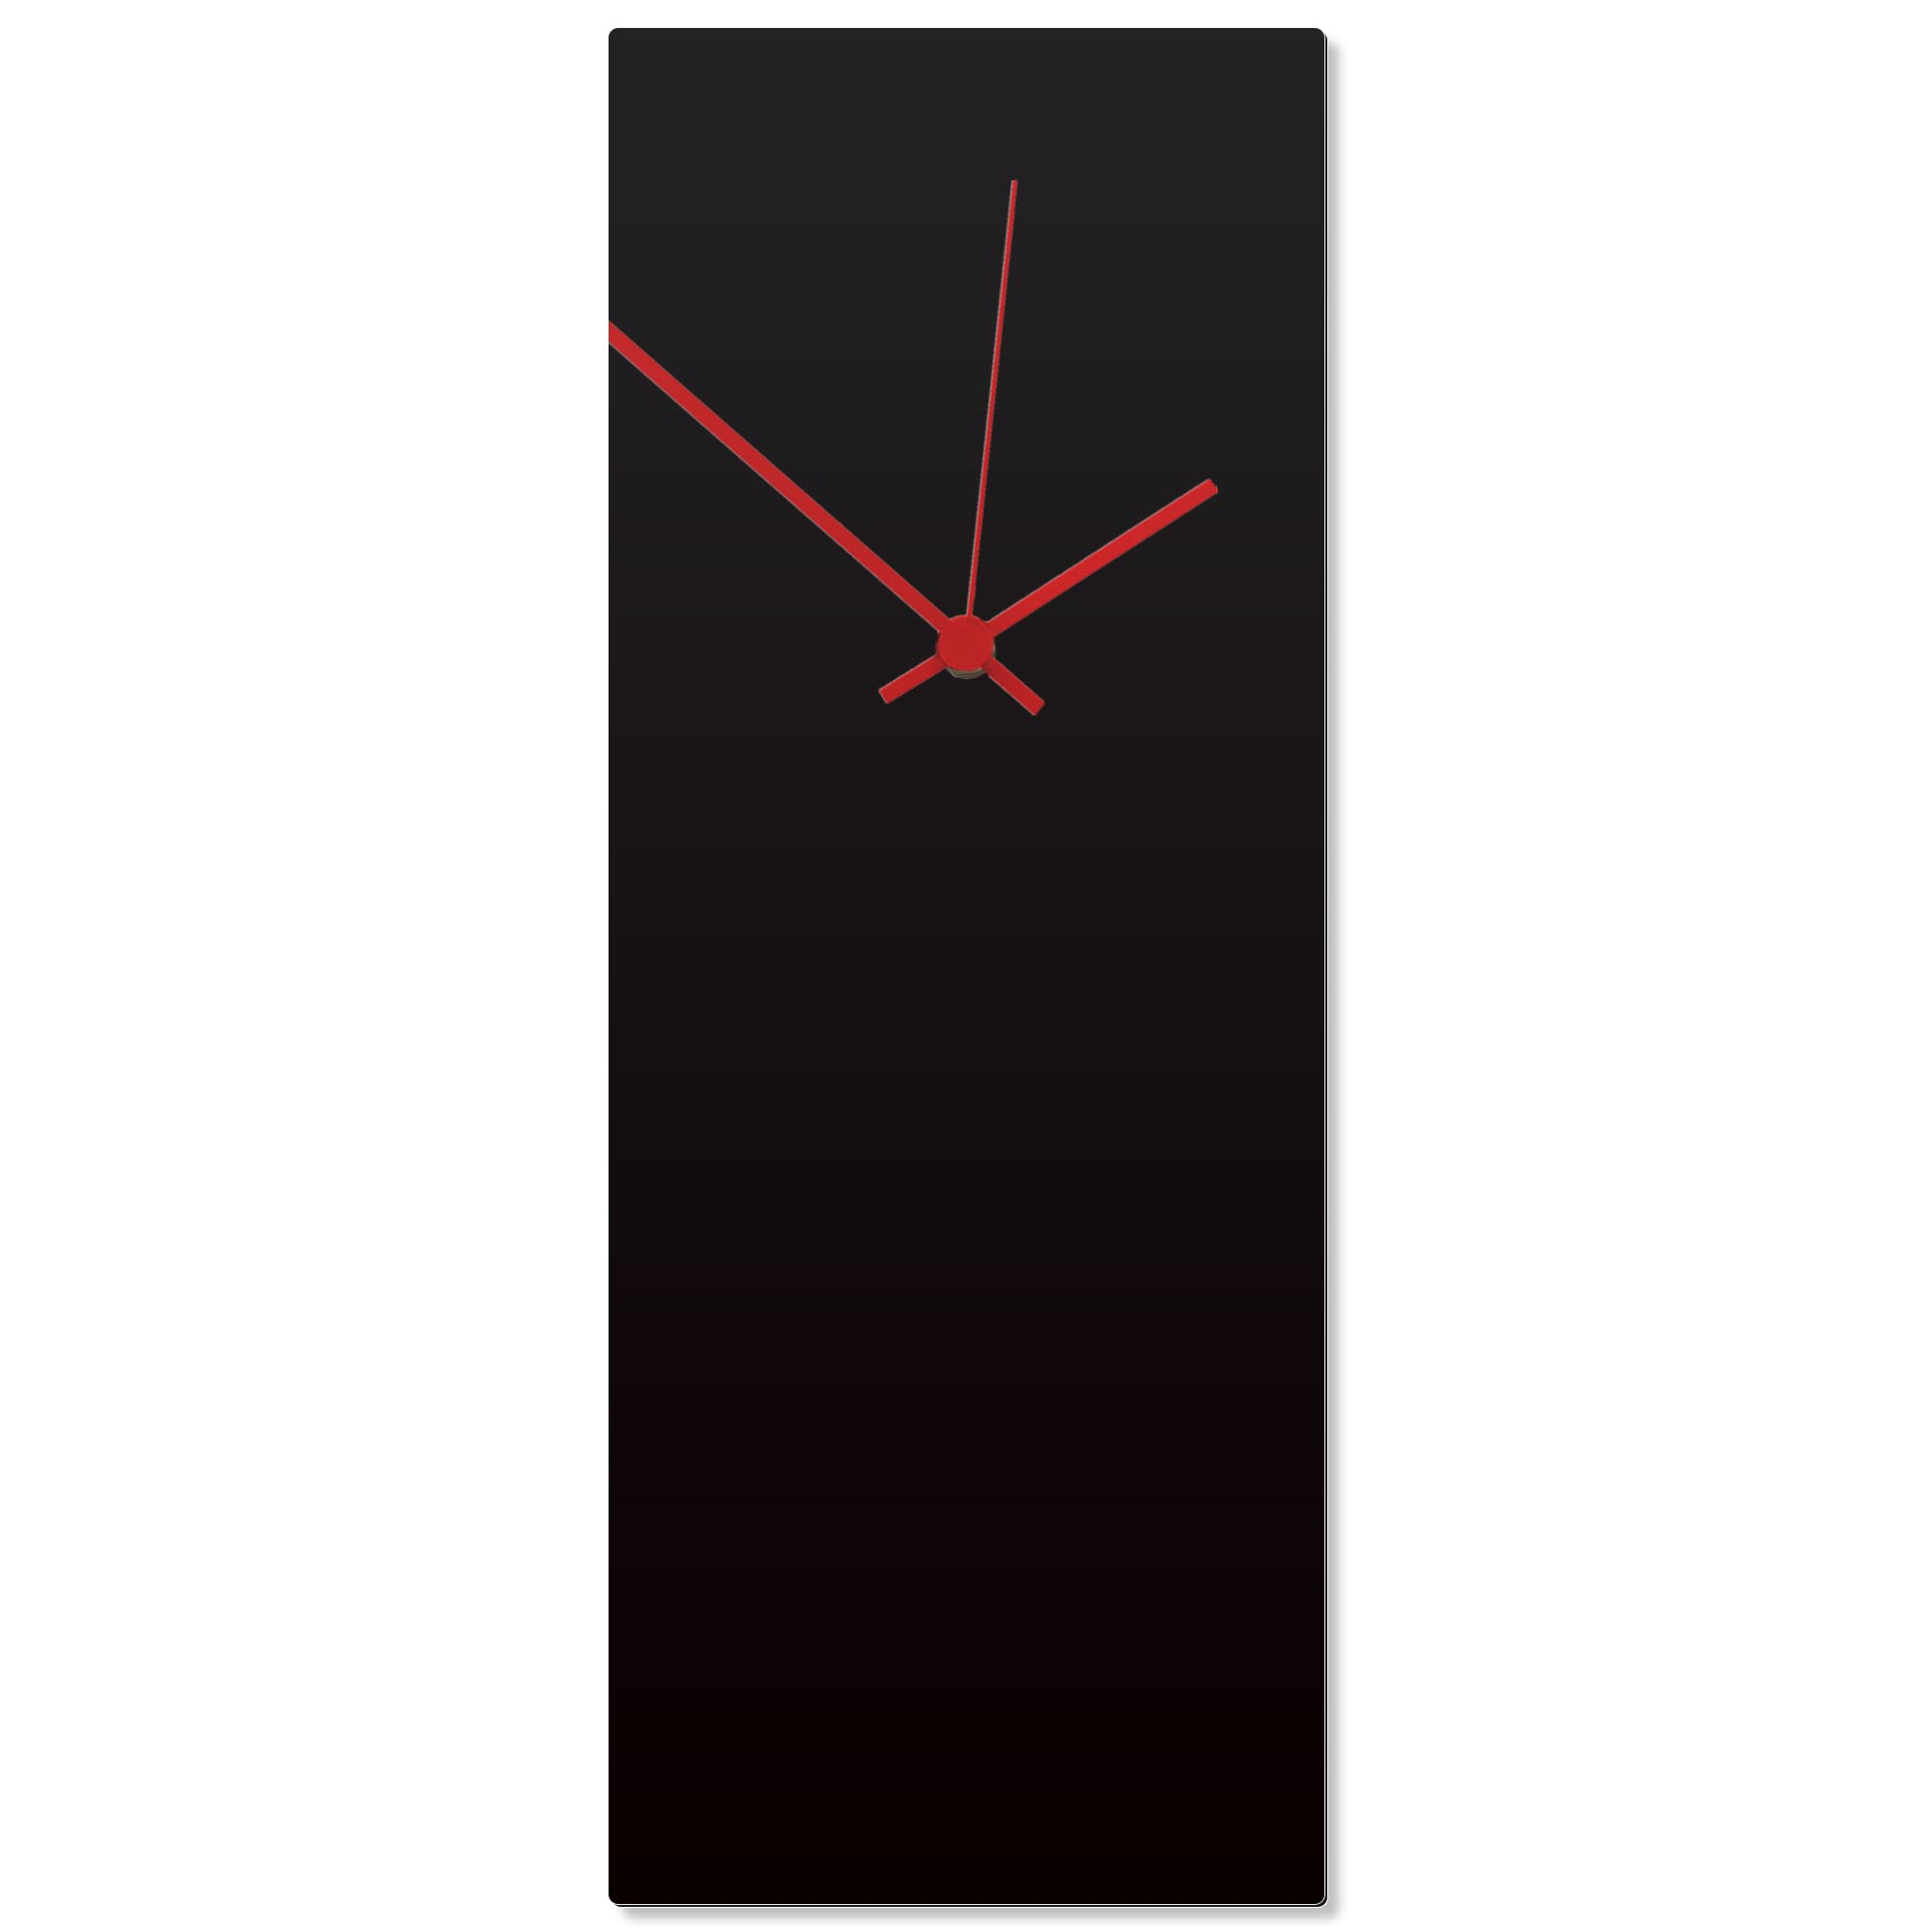 Blackout Red Clock Large 8.25x22in. Aluminum Polymetal